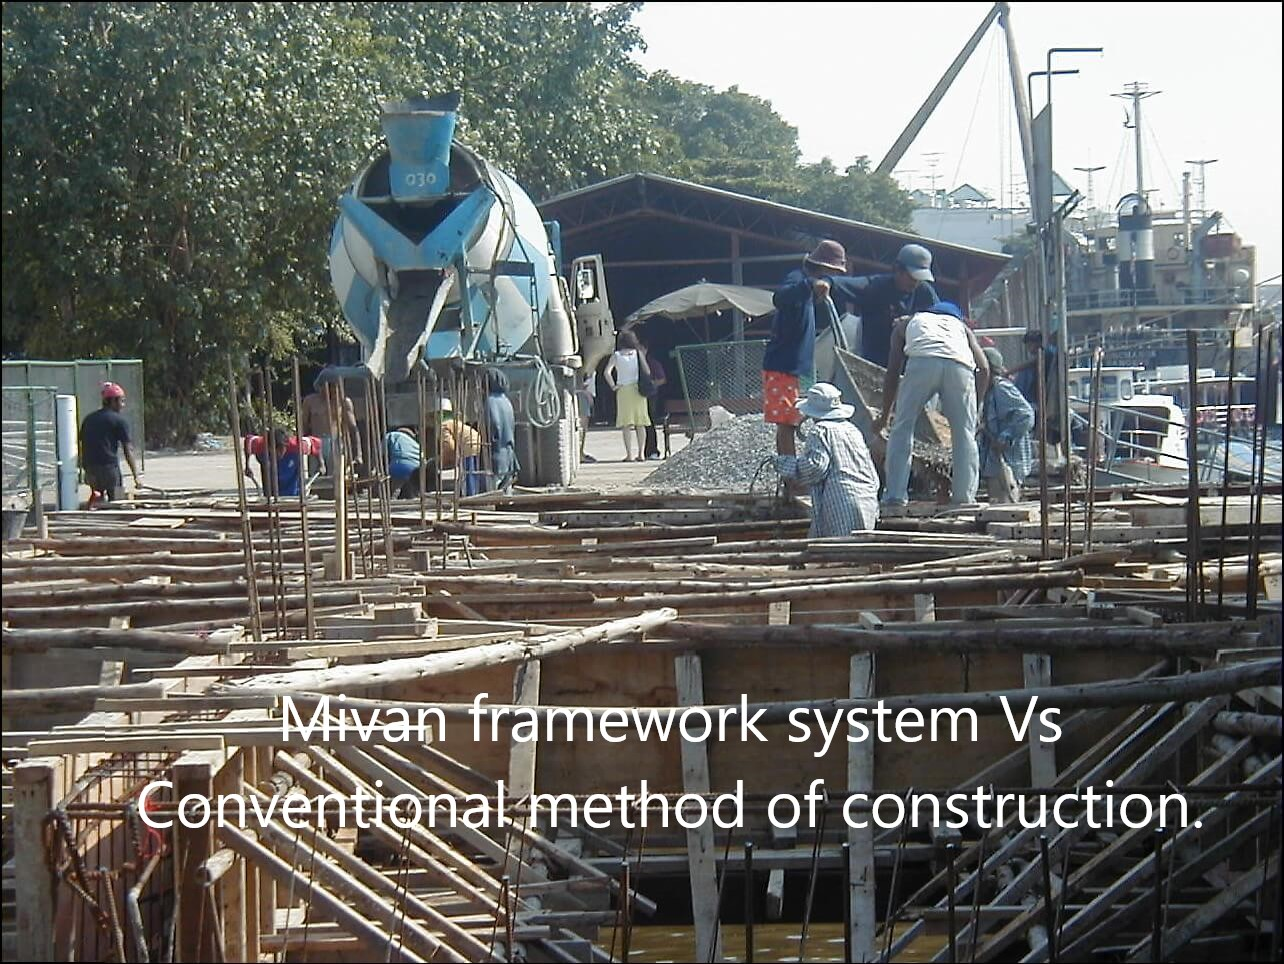 Mivan framework system Vs Conventional method of construction.